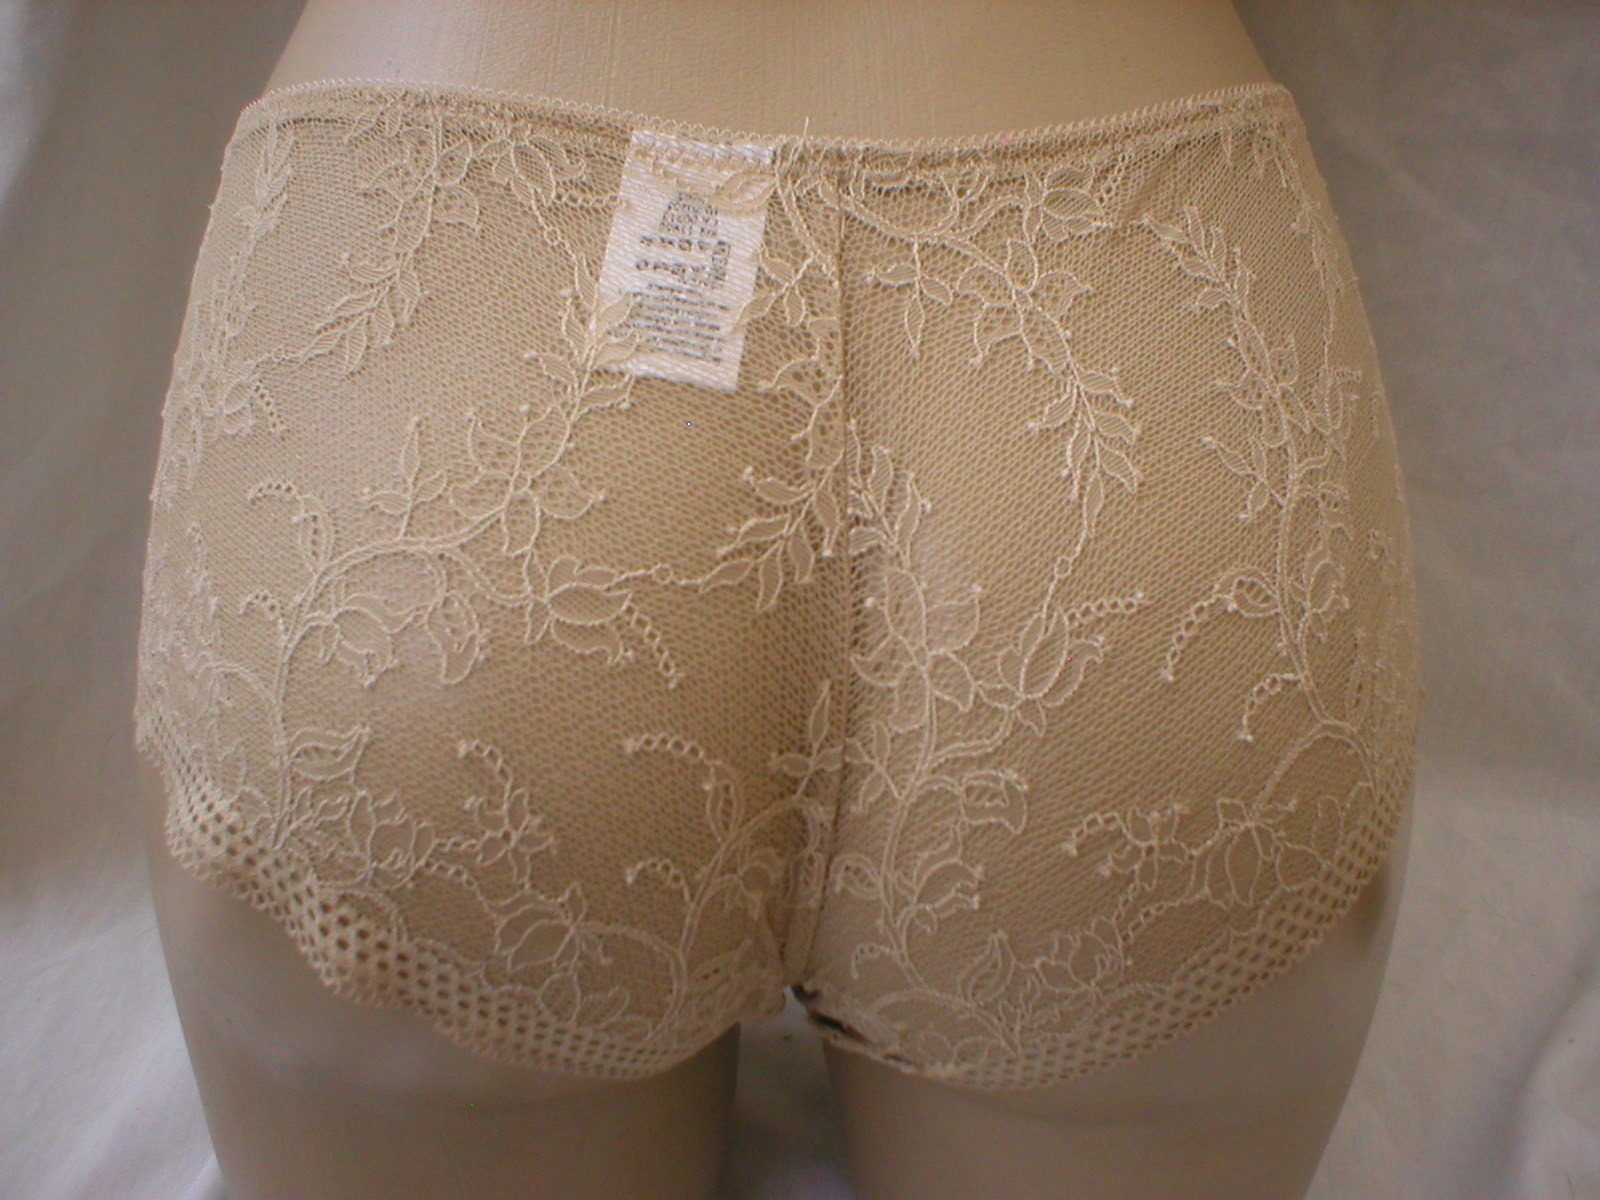 Calvin Klein Nude Perfectly Fit seduction Hipster Pany 2765 NEW S